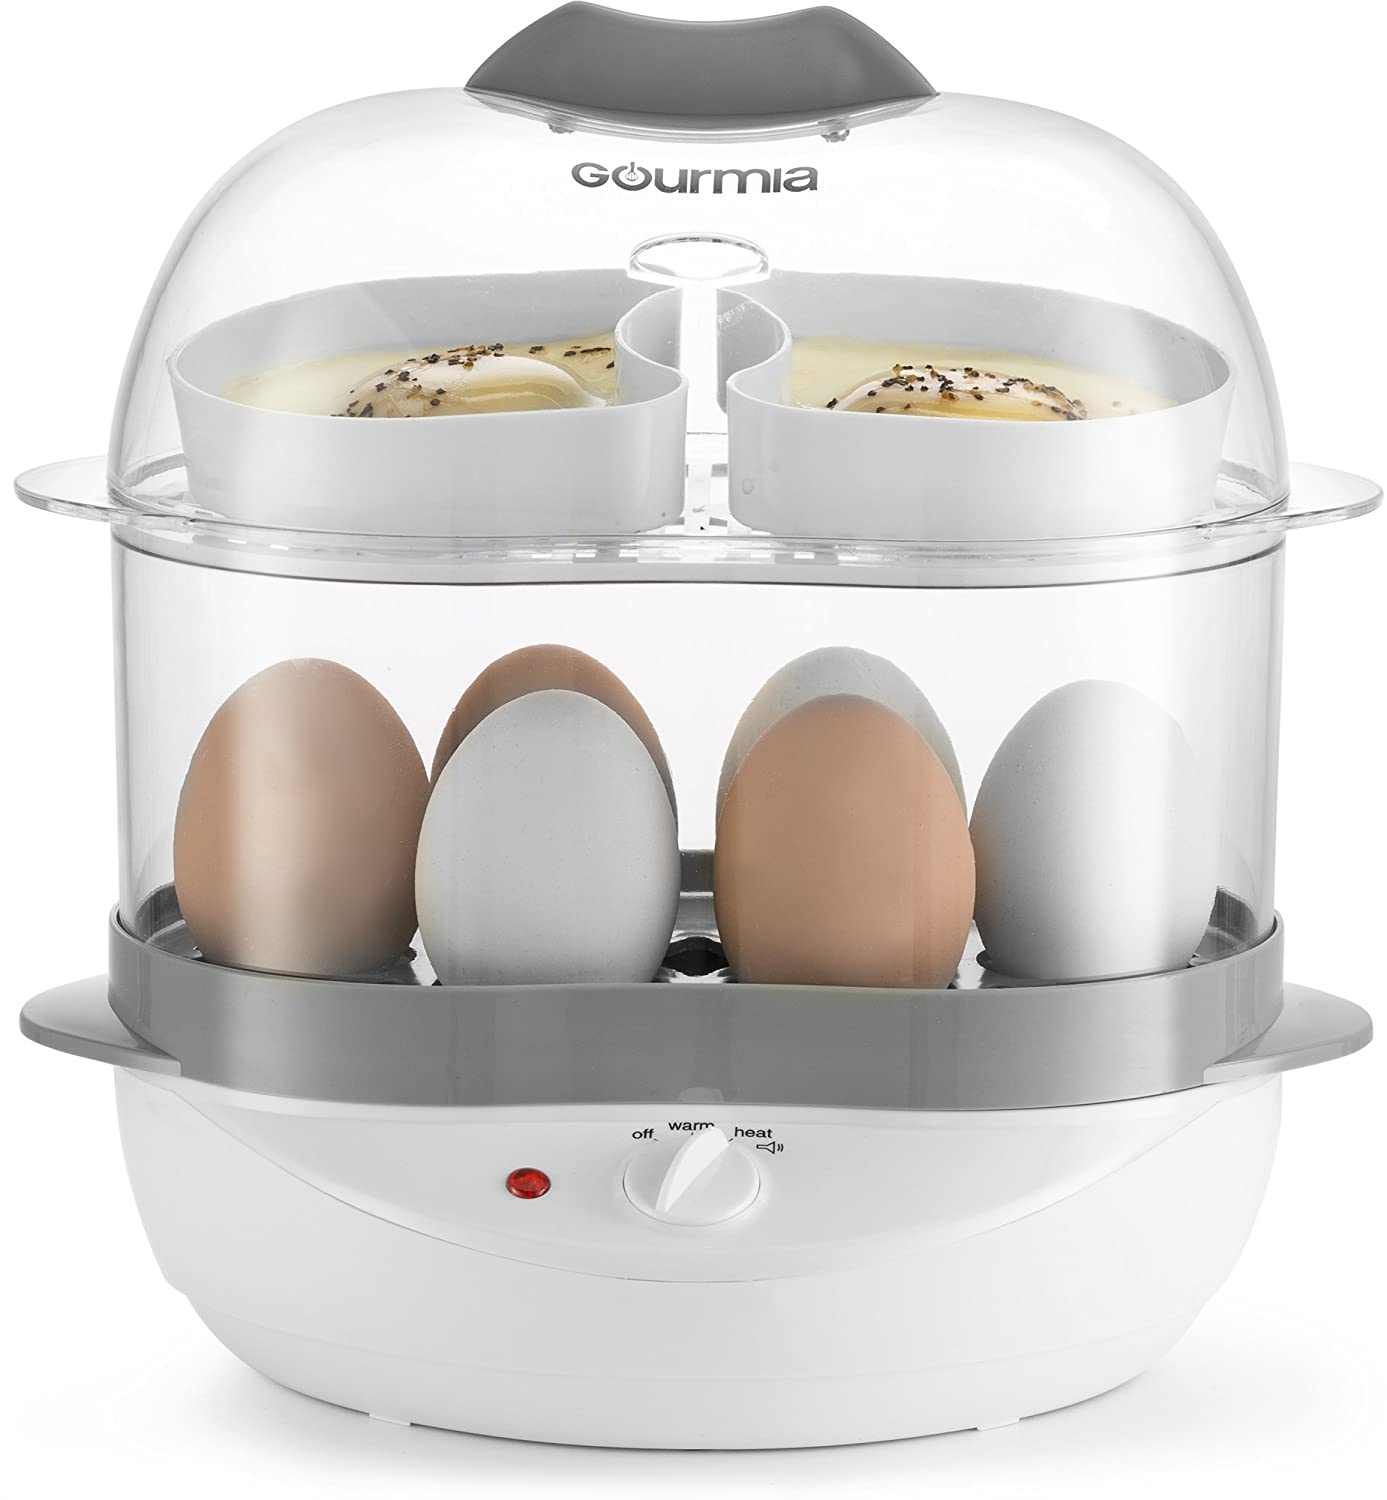 Gourmia GEC275 2 Layer Electric Egg Cooker – Soft, Medium, or Hard Boil – Poacher Steamer Trays – 6 Egg Capacity – Steaming Shelf for Bread and Vegetables – Automatic Shut Off – 400W